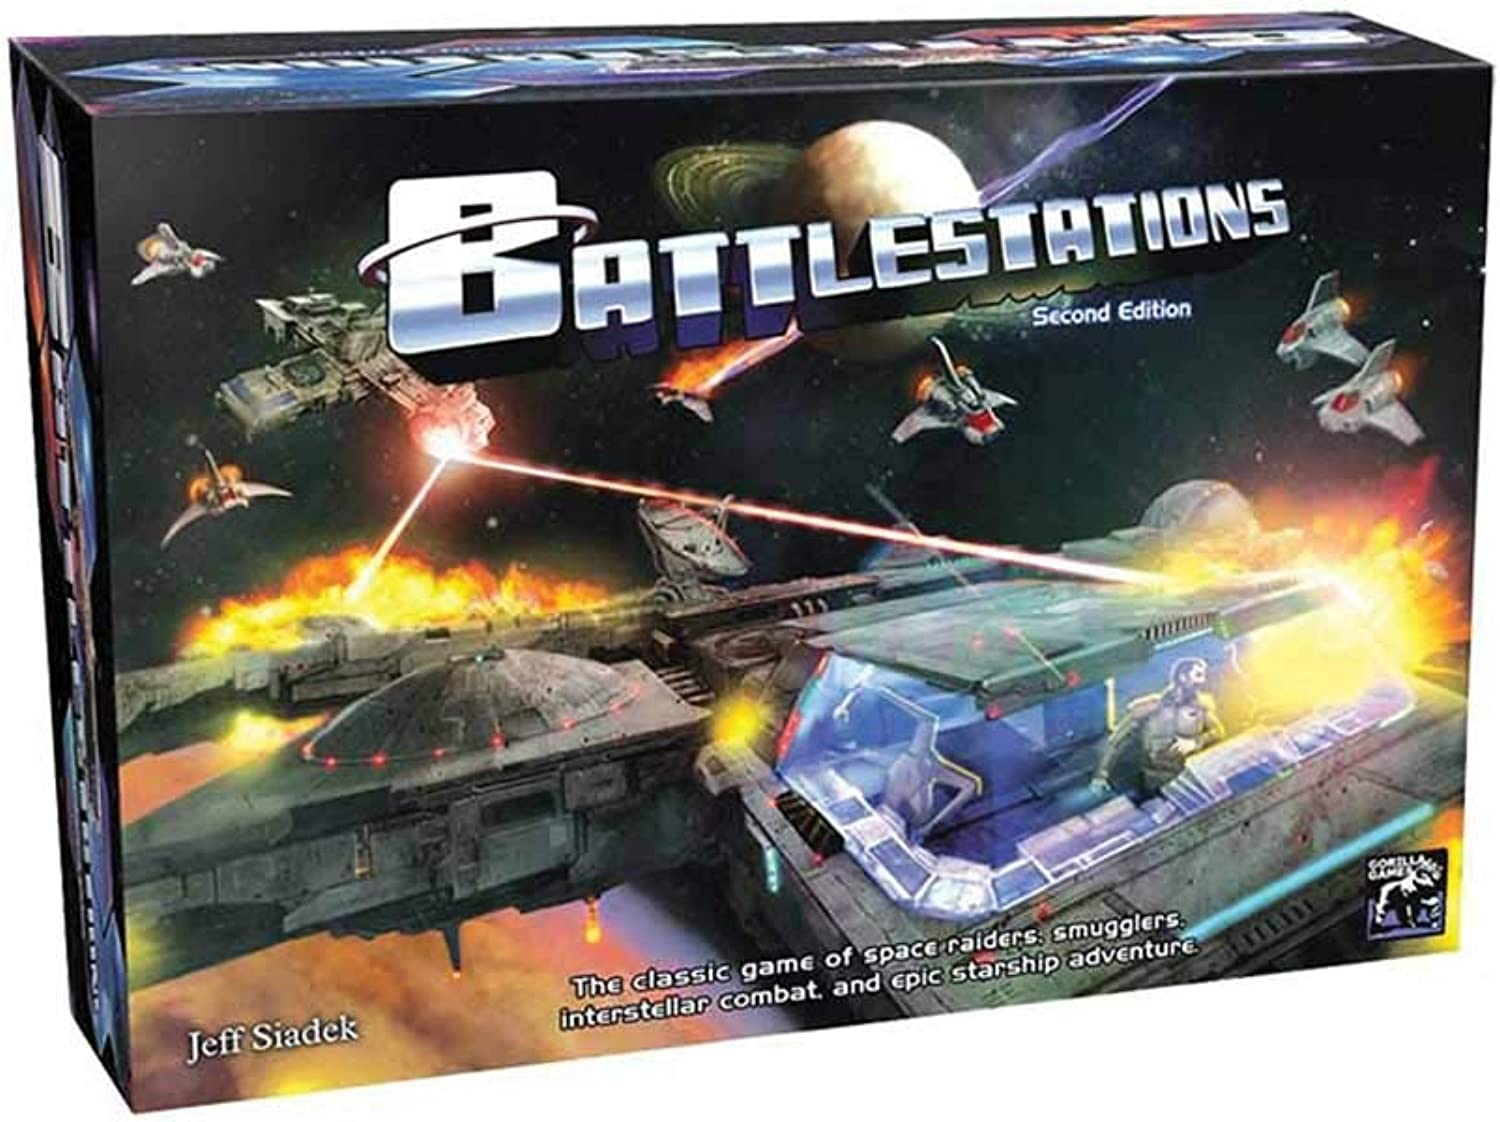 Ultimate Soldier XD F-18 Fighter Jet Military Building Construction Set